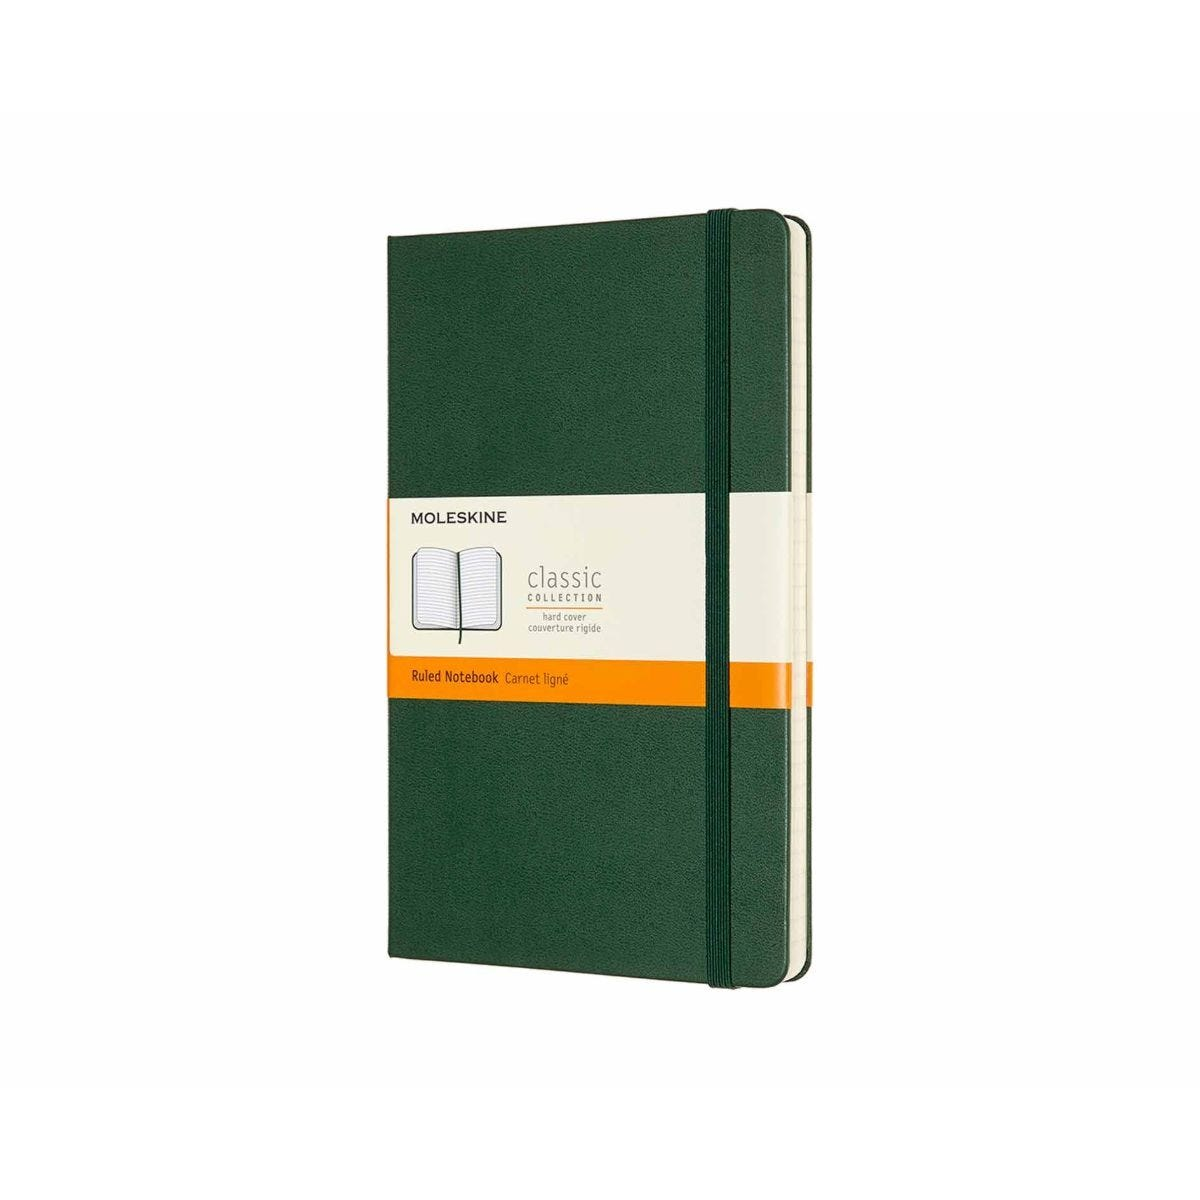 Moleskine Classic Notebook Hardcover Large Ruled Myrtle Green